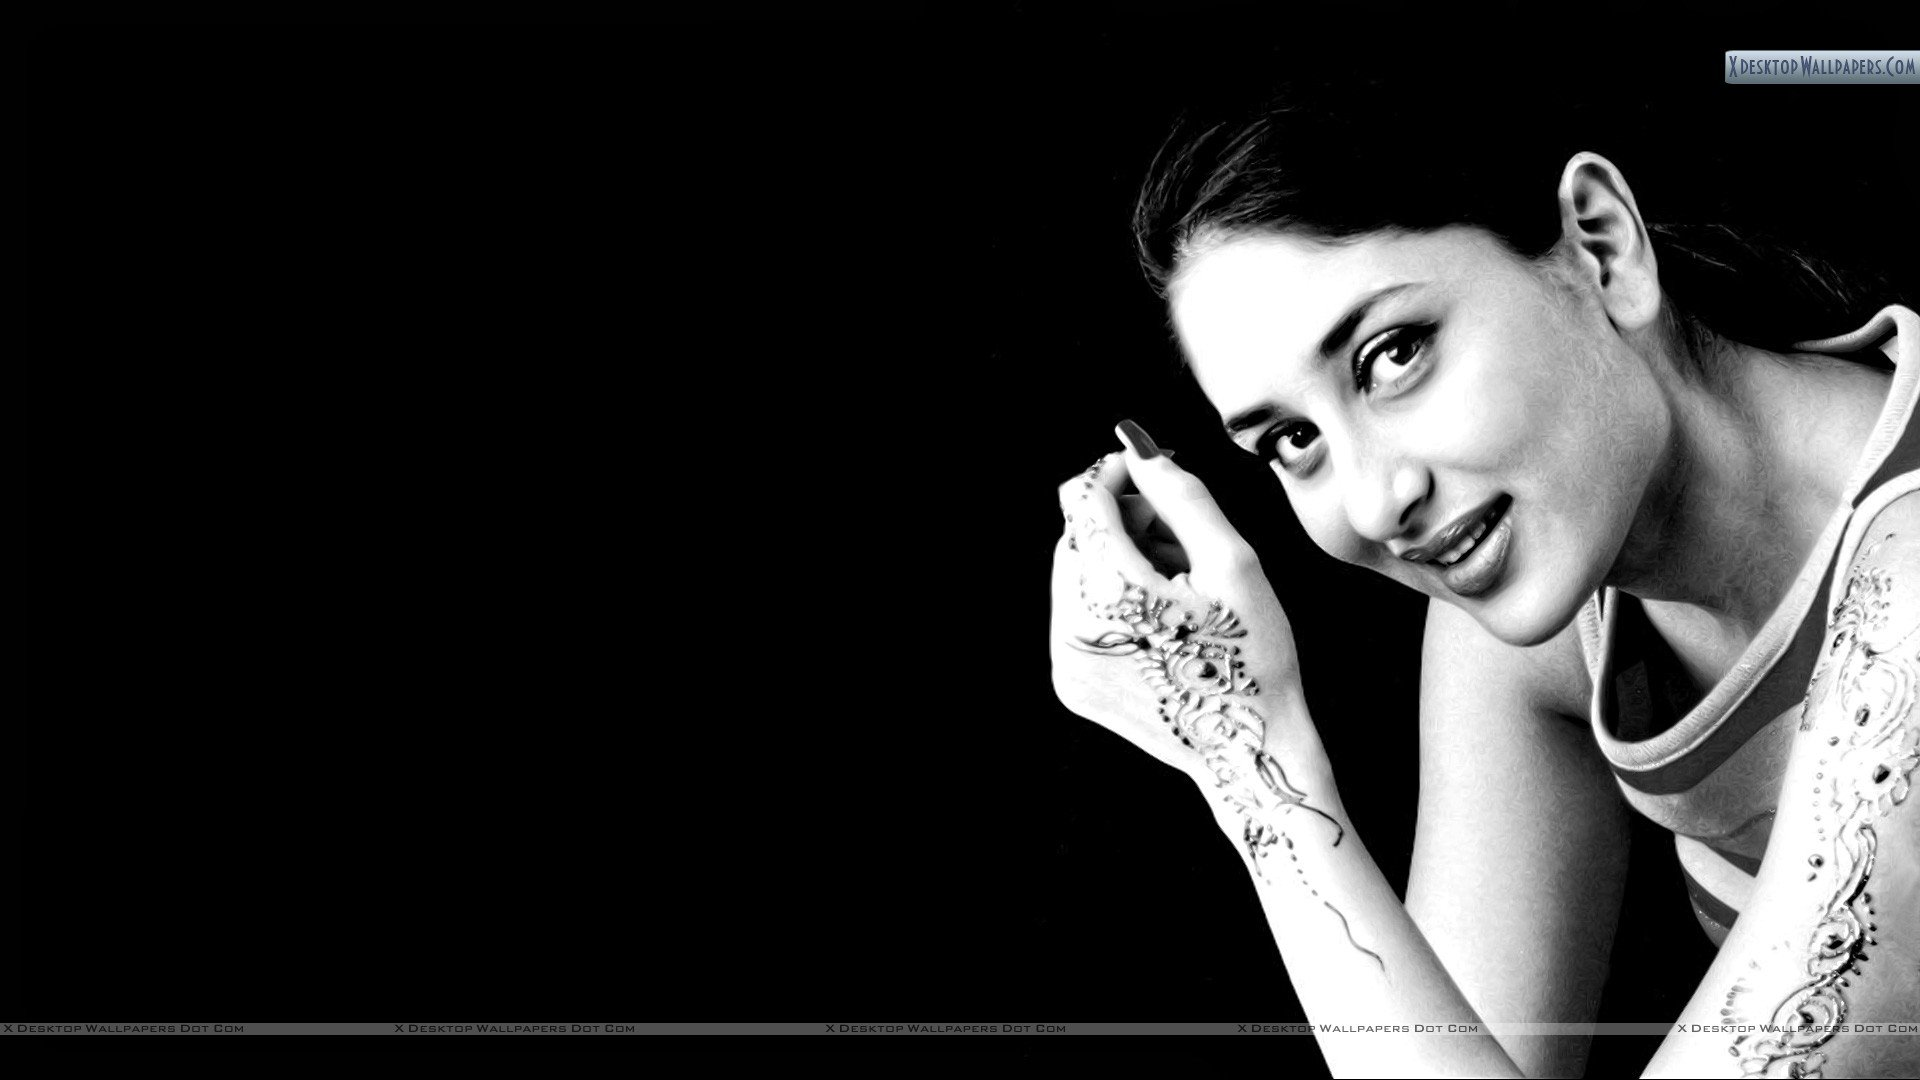 Kareena Kapoor Black And White wallpaper   284700 1920x1080